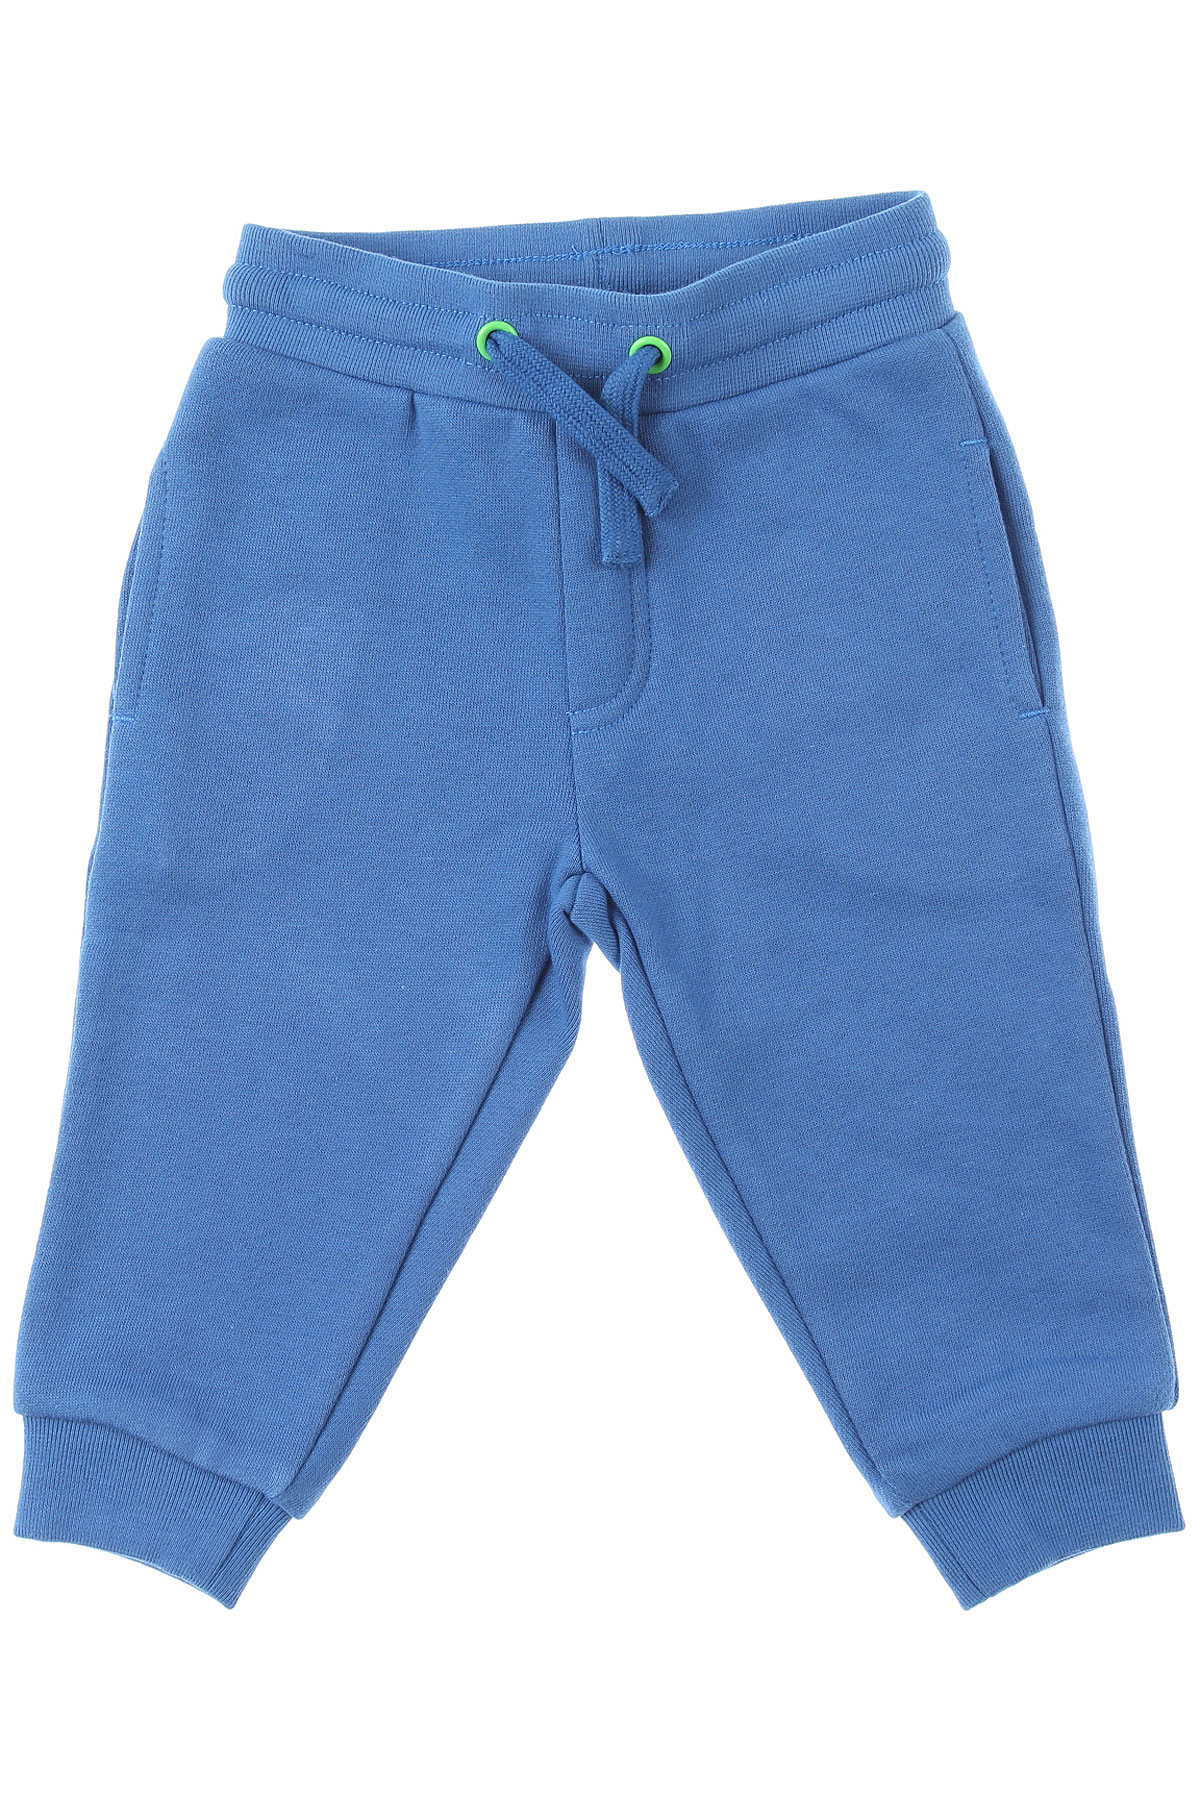 Stella McCartney Baby Sweatpants for Boys On Sale, Blue, Cotton, 2019, 18 M 2Y 6M 9 M